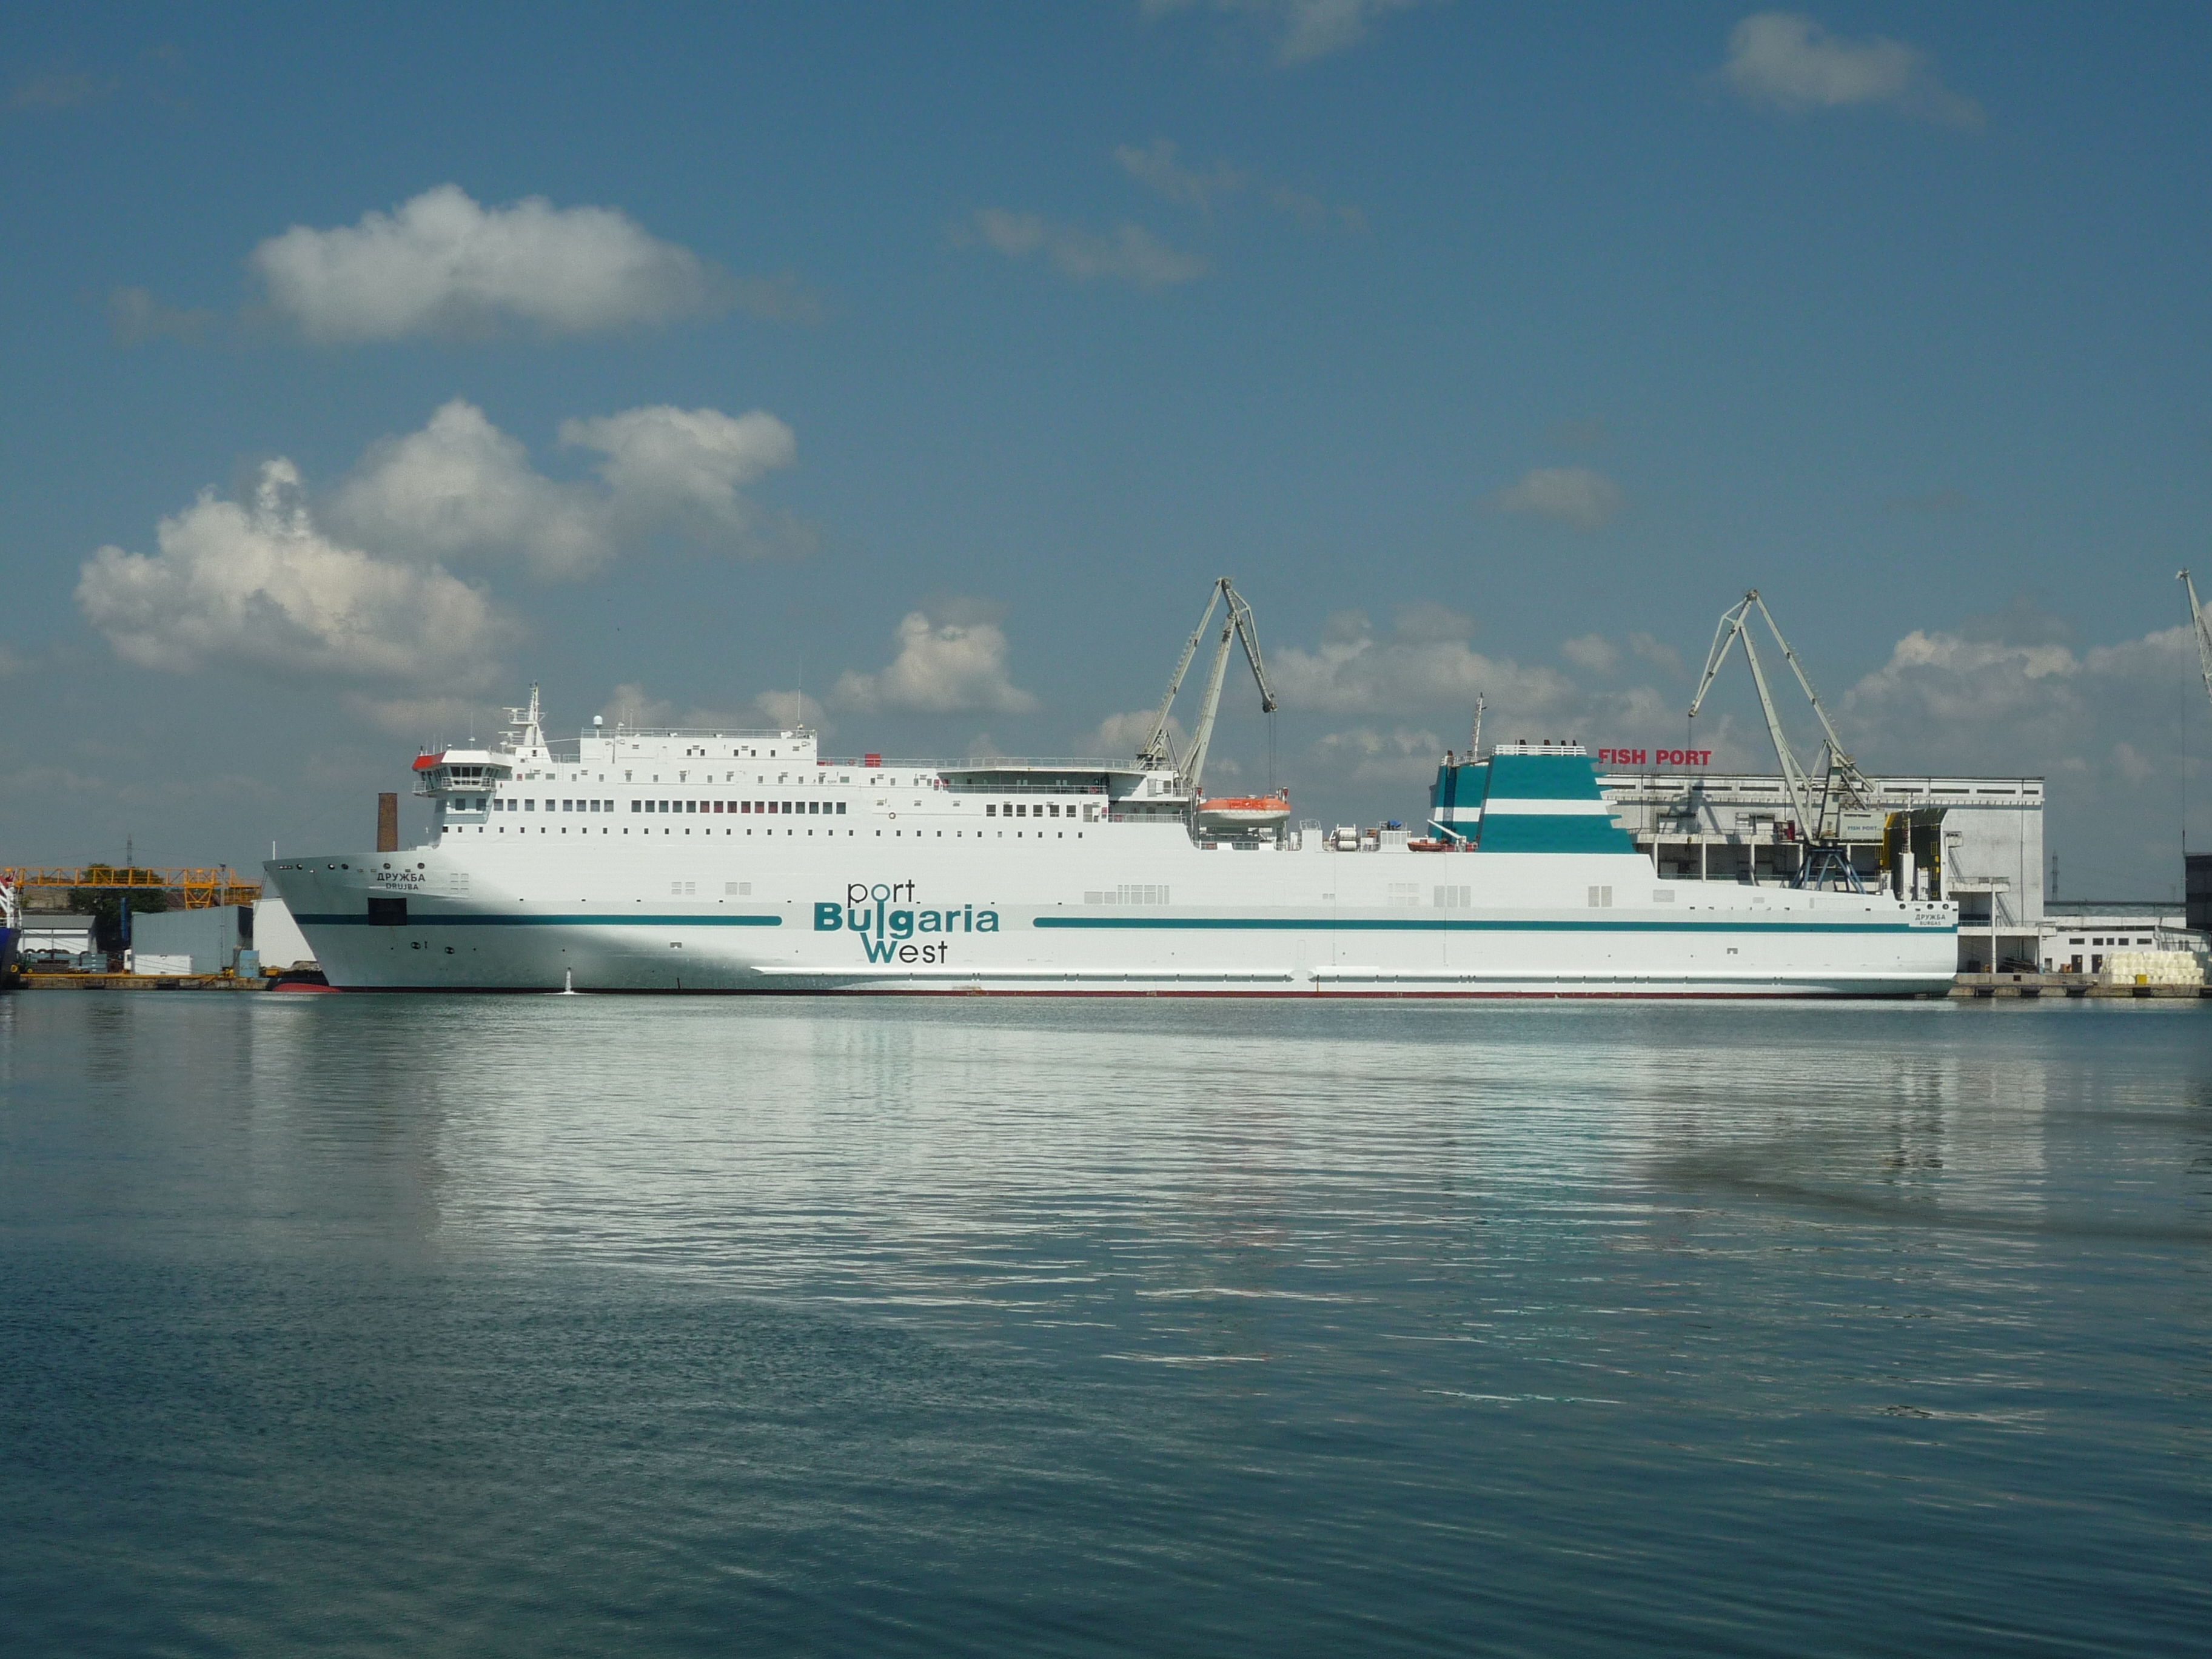 Design and Feasibility of Modern of RoRo and Ropax Vessels